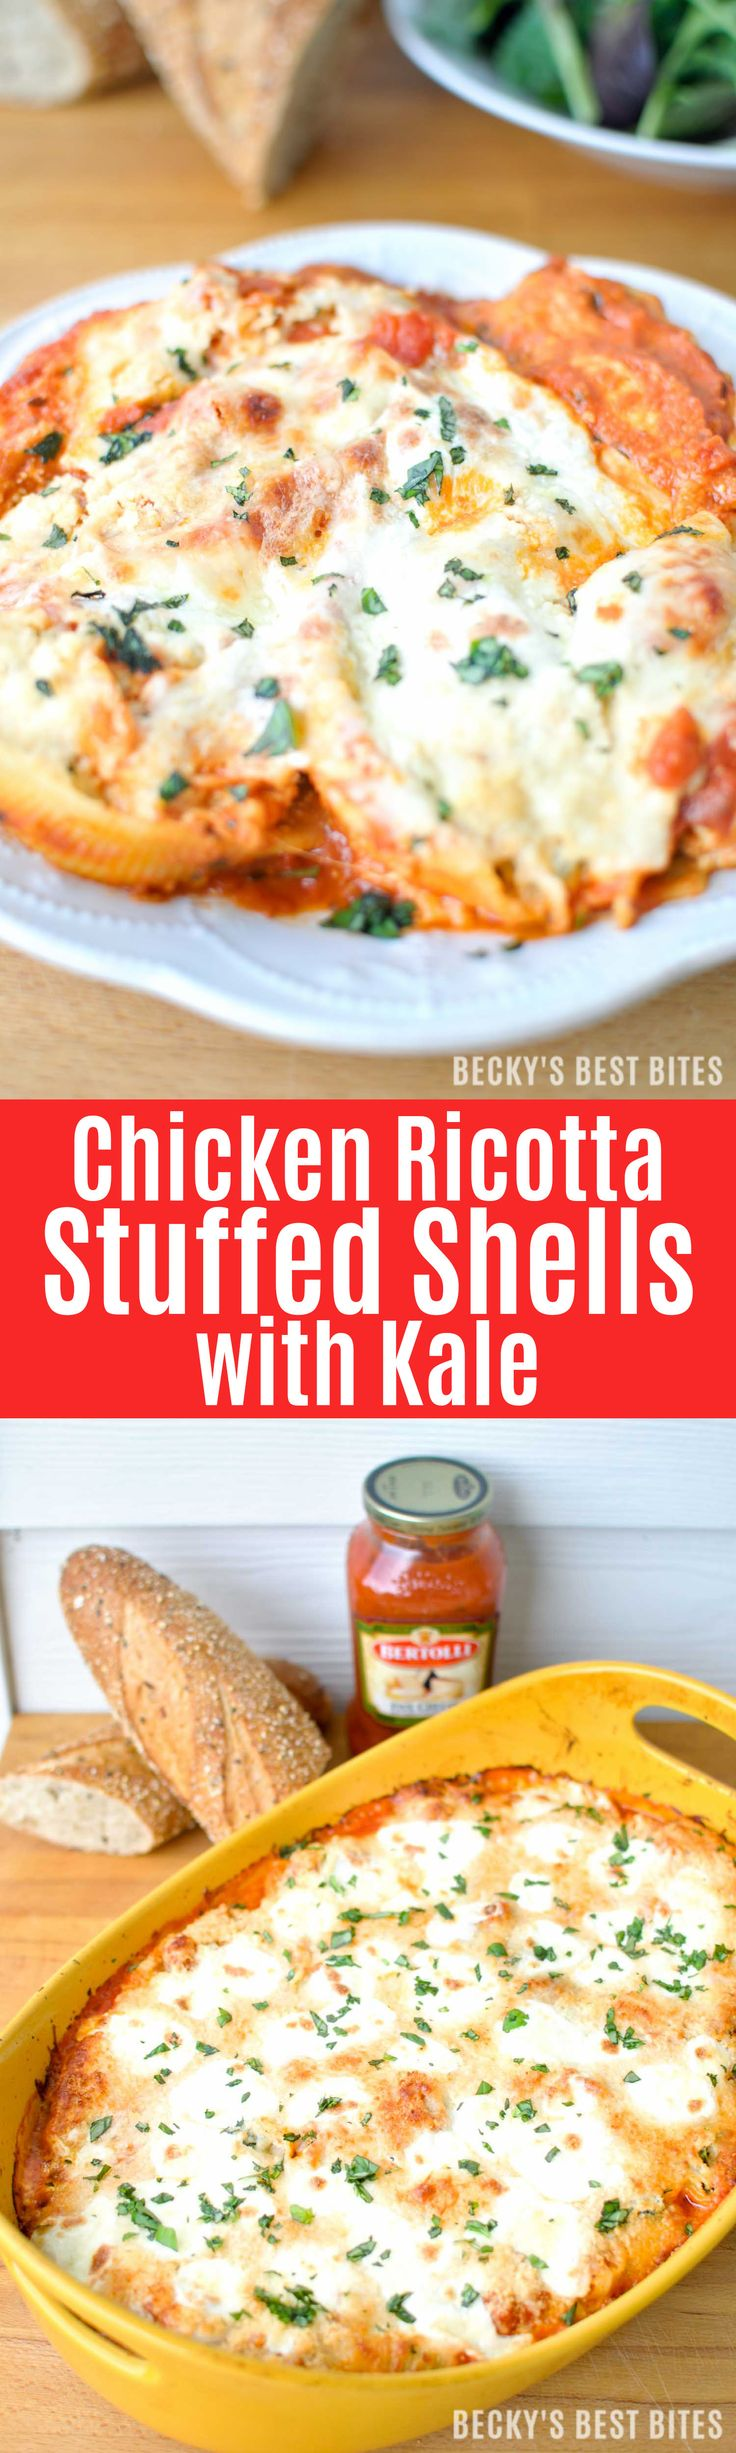 Chicken Ricotta Stuffed Shells with Kale is an easy Italian inspired meal with fresh seasonal produce for a large gathering with the help of Bertolli pasta sauces. | beckysbestbites.com #VivaBertolli #ad